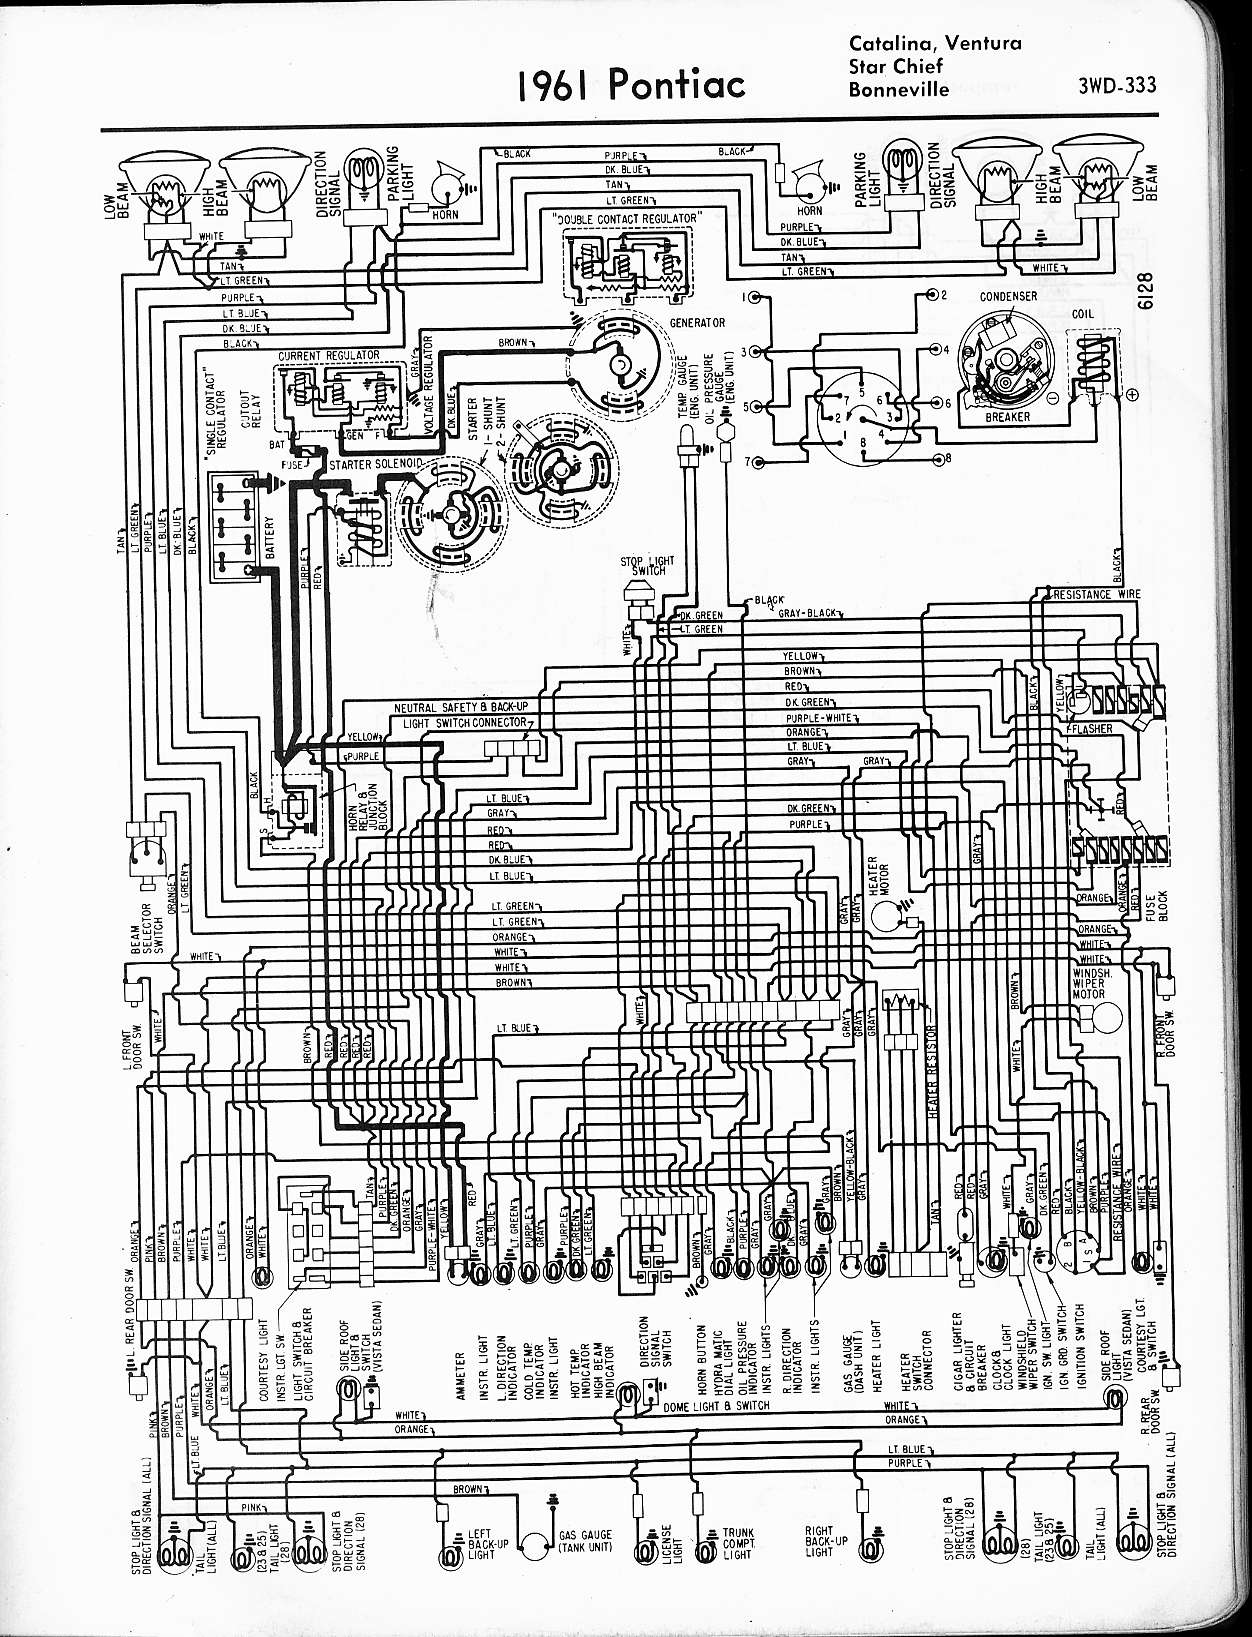 wiring diagram for 1966 pontiac tempest enthusiast wiring diagrams u2022 rh rasalibre co 1966 Catalina Wiring Diagram 1966 Bronco Wiring Diagram